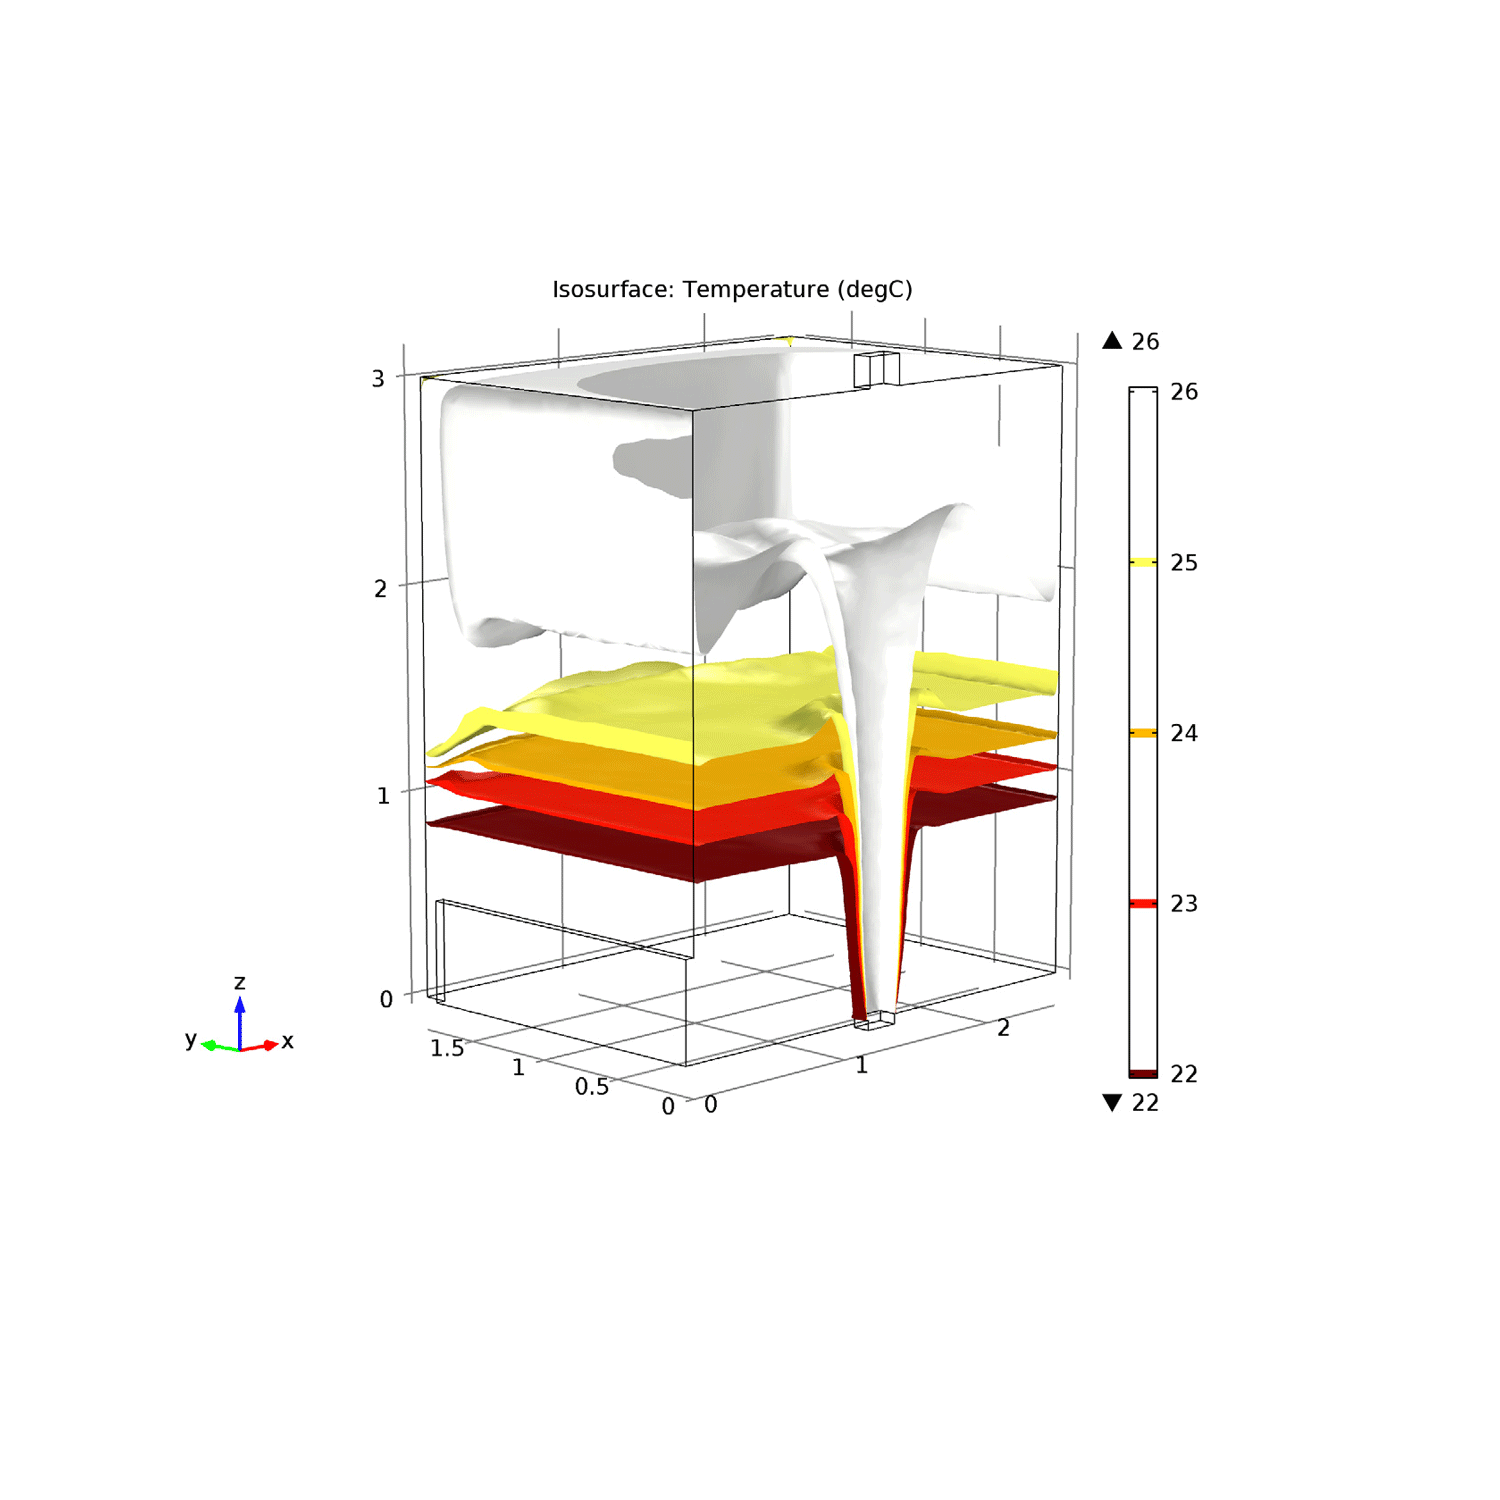 Non-isothermal Flow: Simulation of a displacement ventilation system where the isosurfaces for temperature are plotted. The model simulates nonisothermal flow and turbulence using the k-epsilon model.